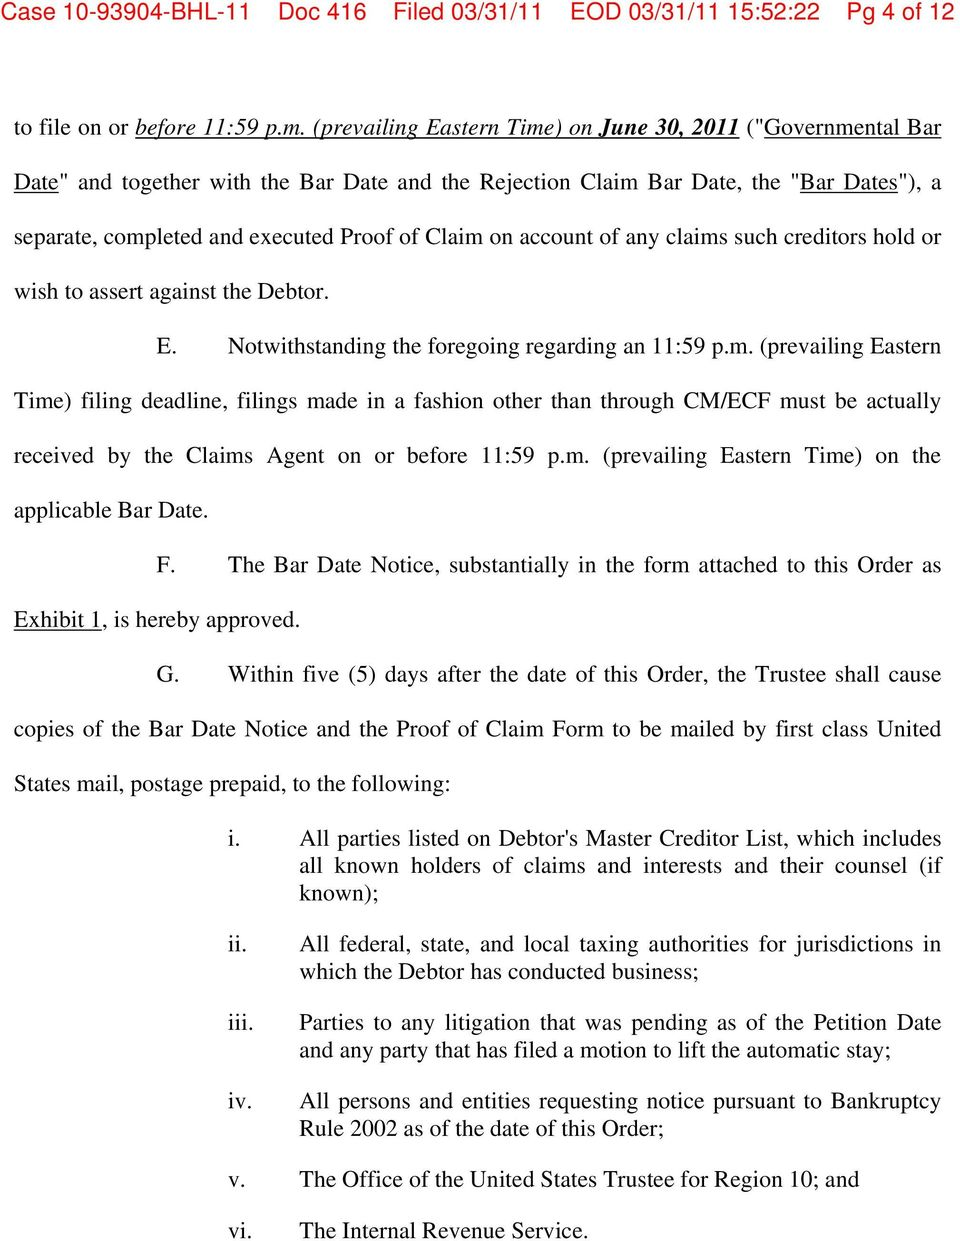 Claim on account of any claims such creditors hold or wish to assert against the Debtor. E. Notwithstanding the foregoing regarding an 11:59 p.m. (prevailing Eastern Time) filing deadline, filings made in a fashion other than through CM/ECF must be actually received by the Claims Agent on or before 11:59 p.